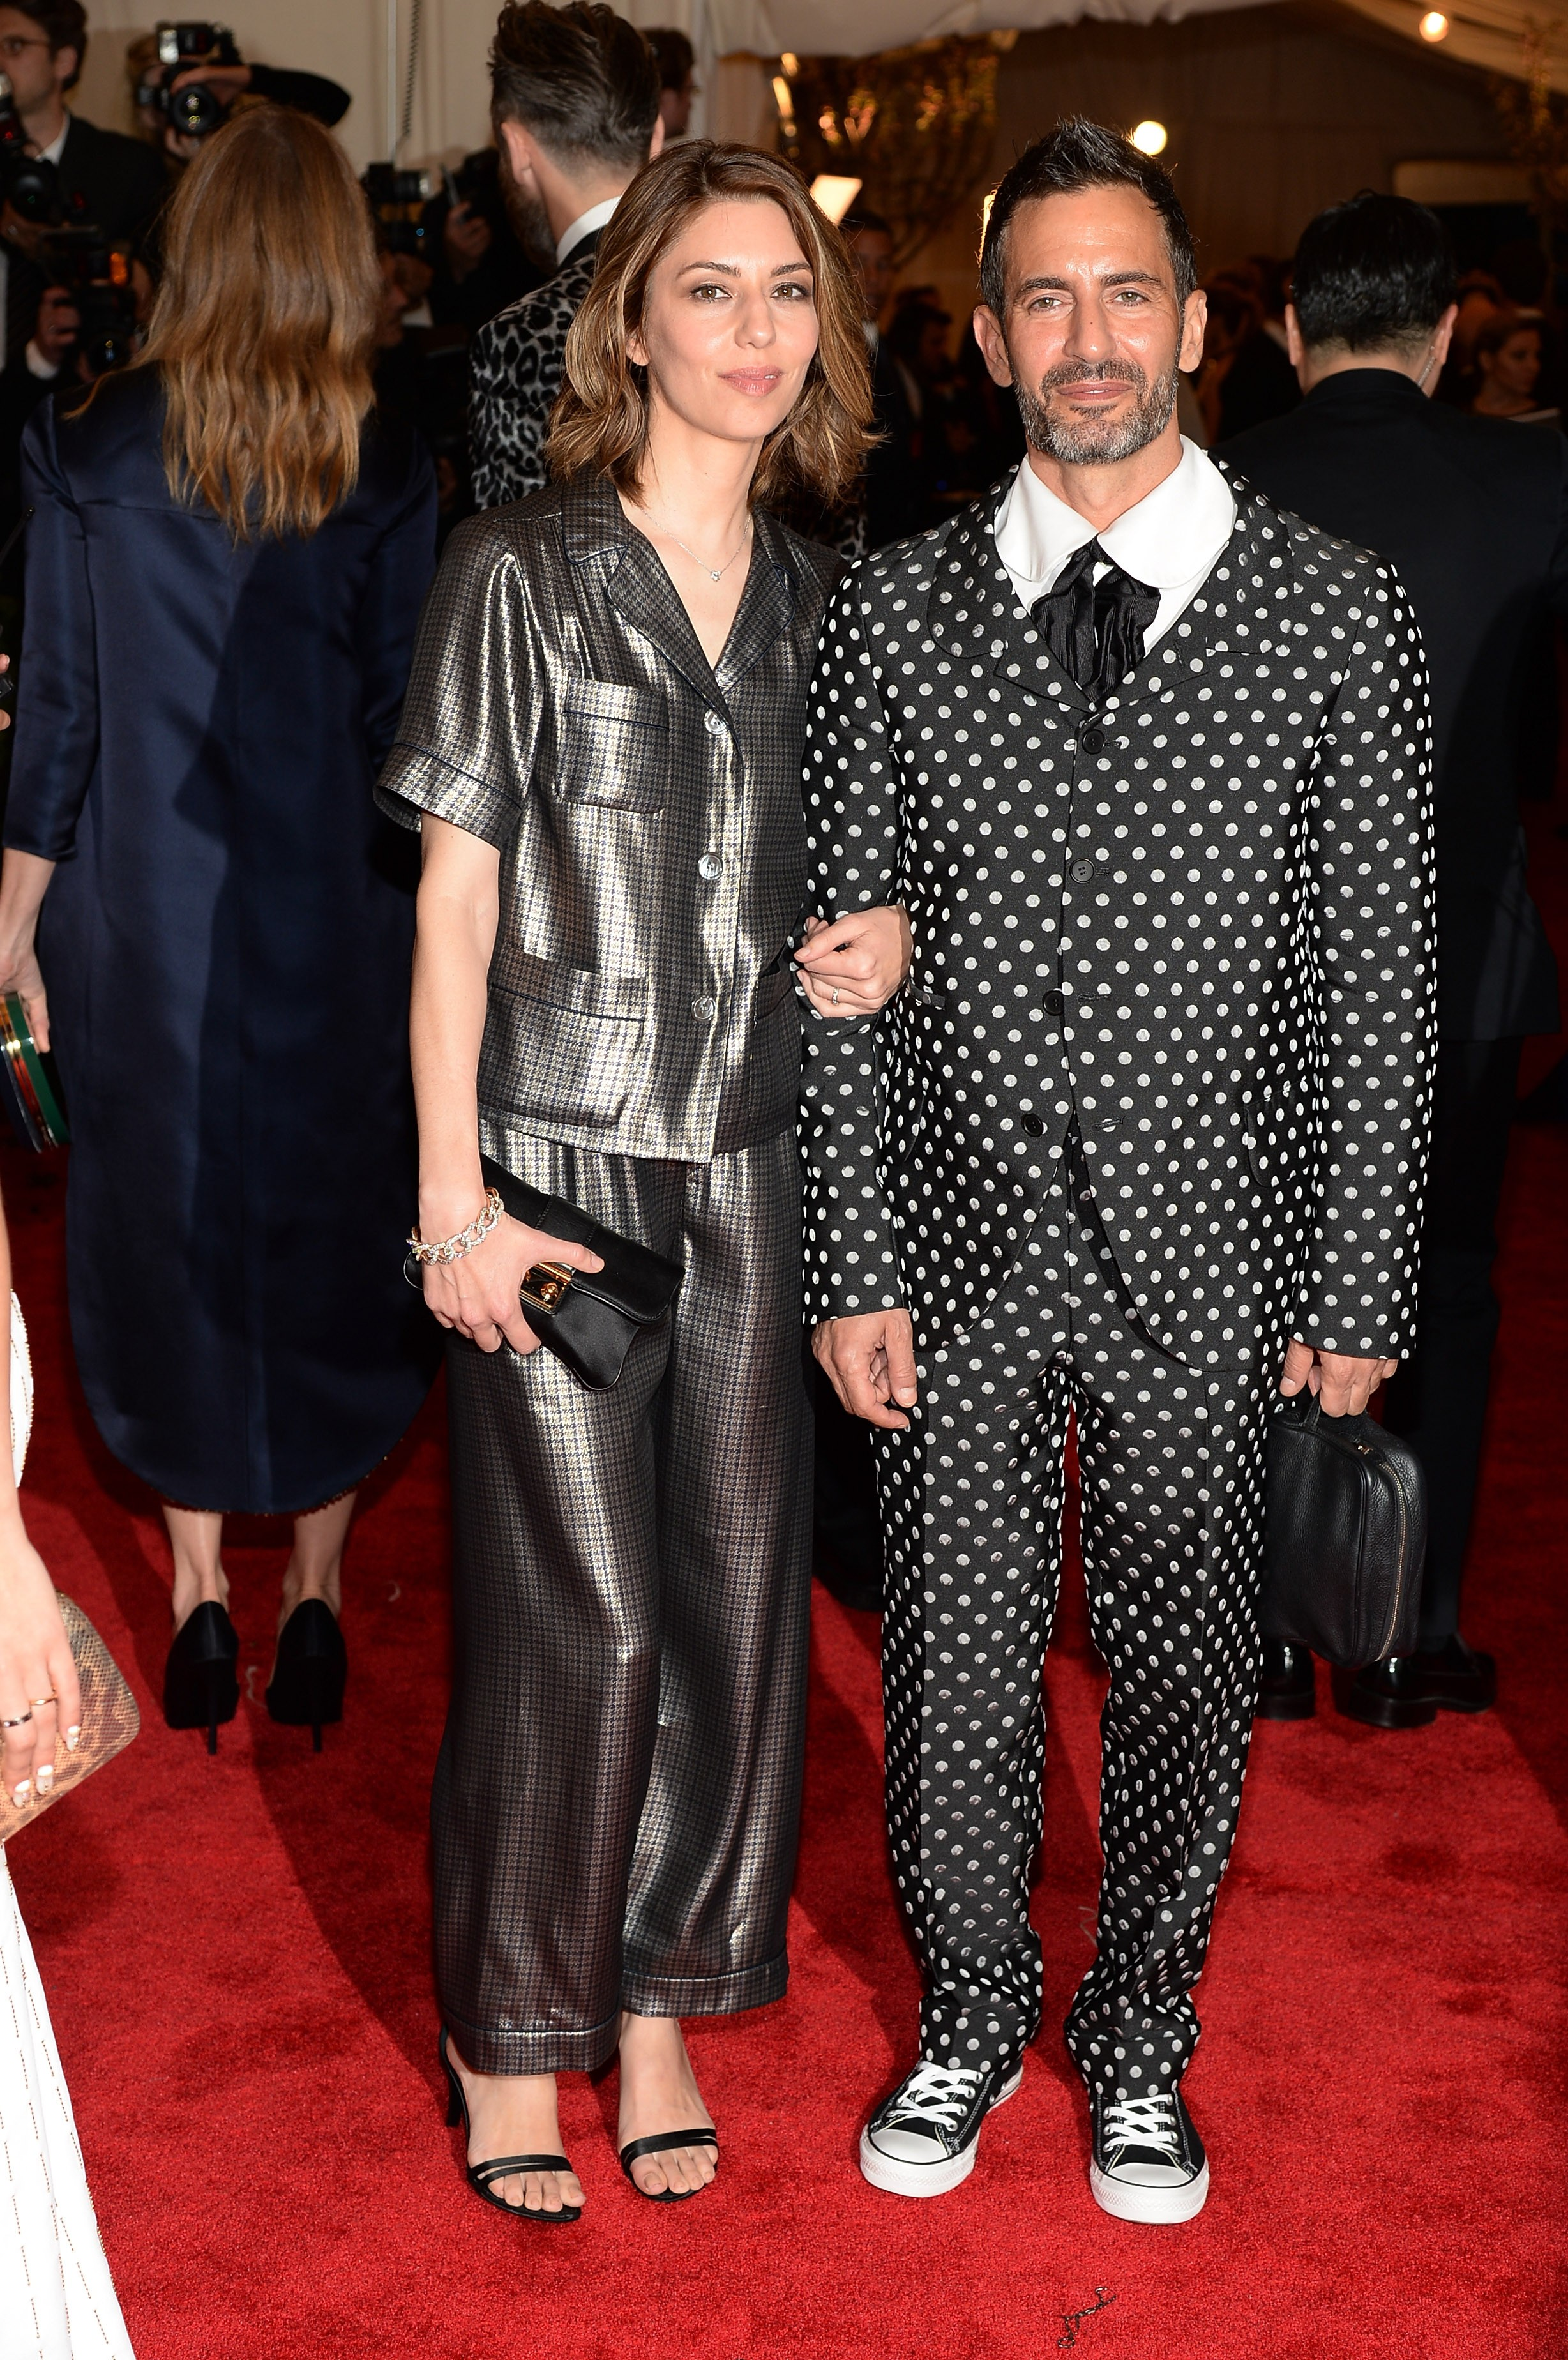 De poá no red carpet com a amiga Sofia Coppola (Foto: Getty Images)